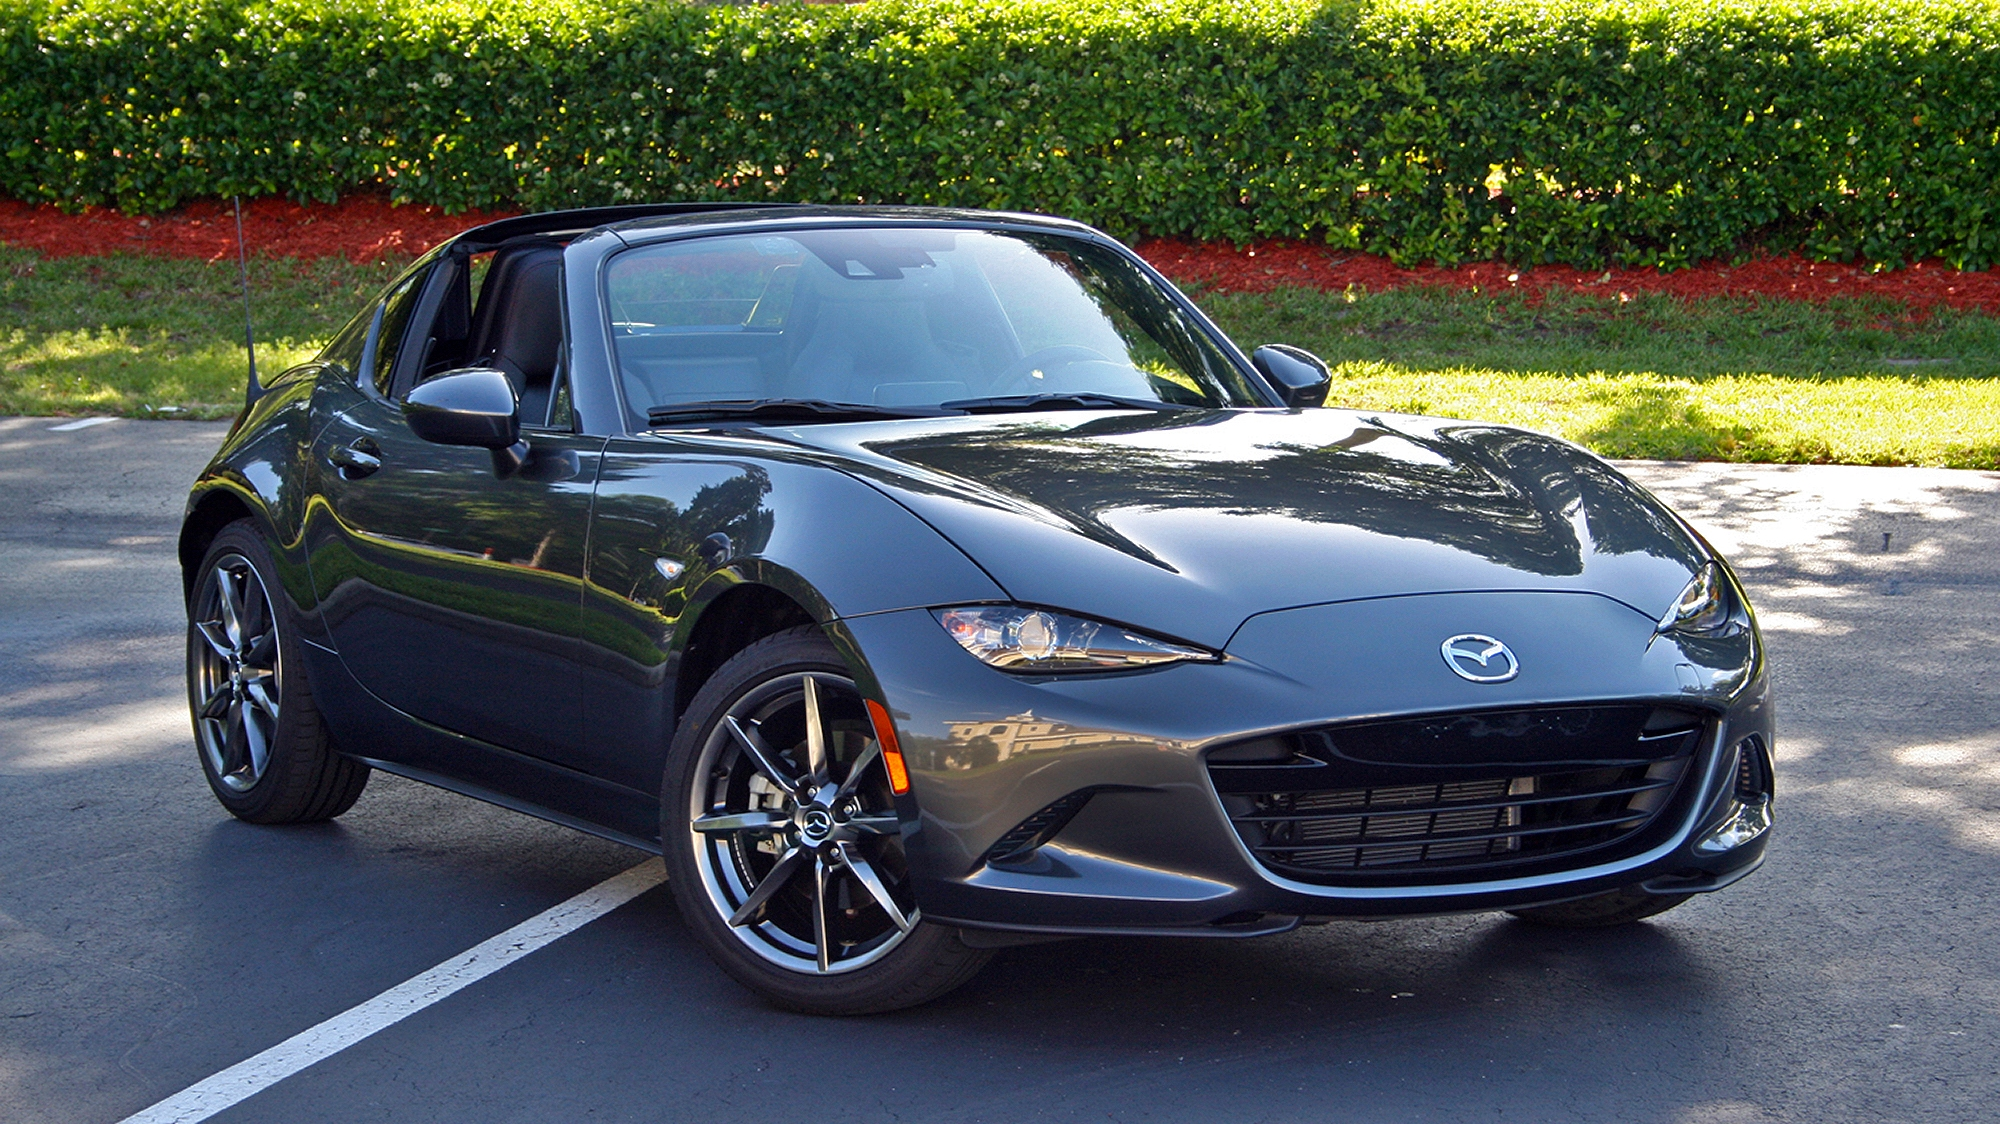 Mx 5 Rf Price >> 2017 Mazda Miata RF – Driven | Top Speed